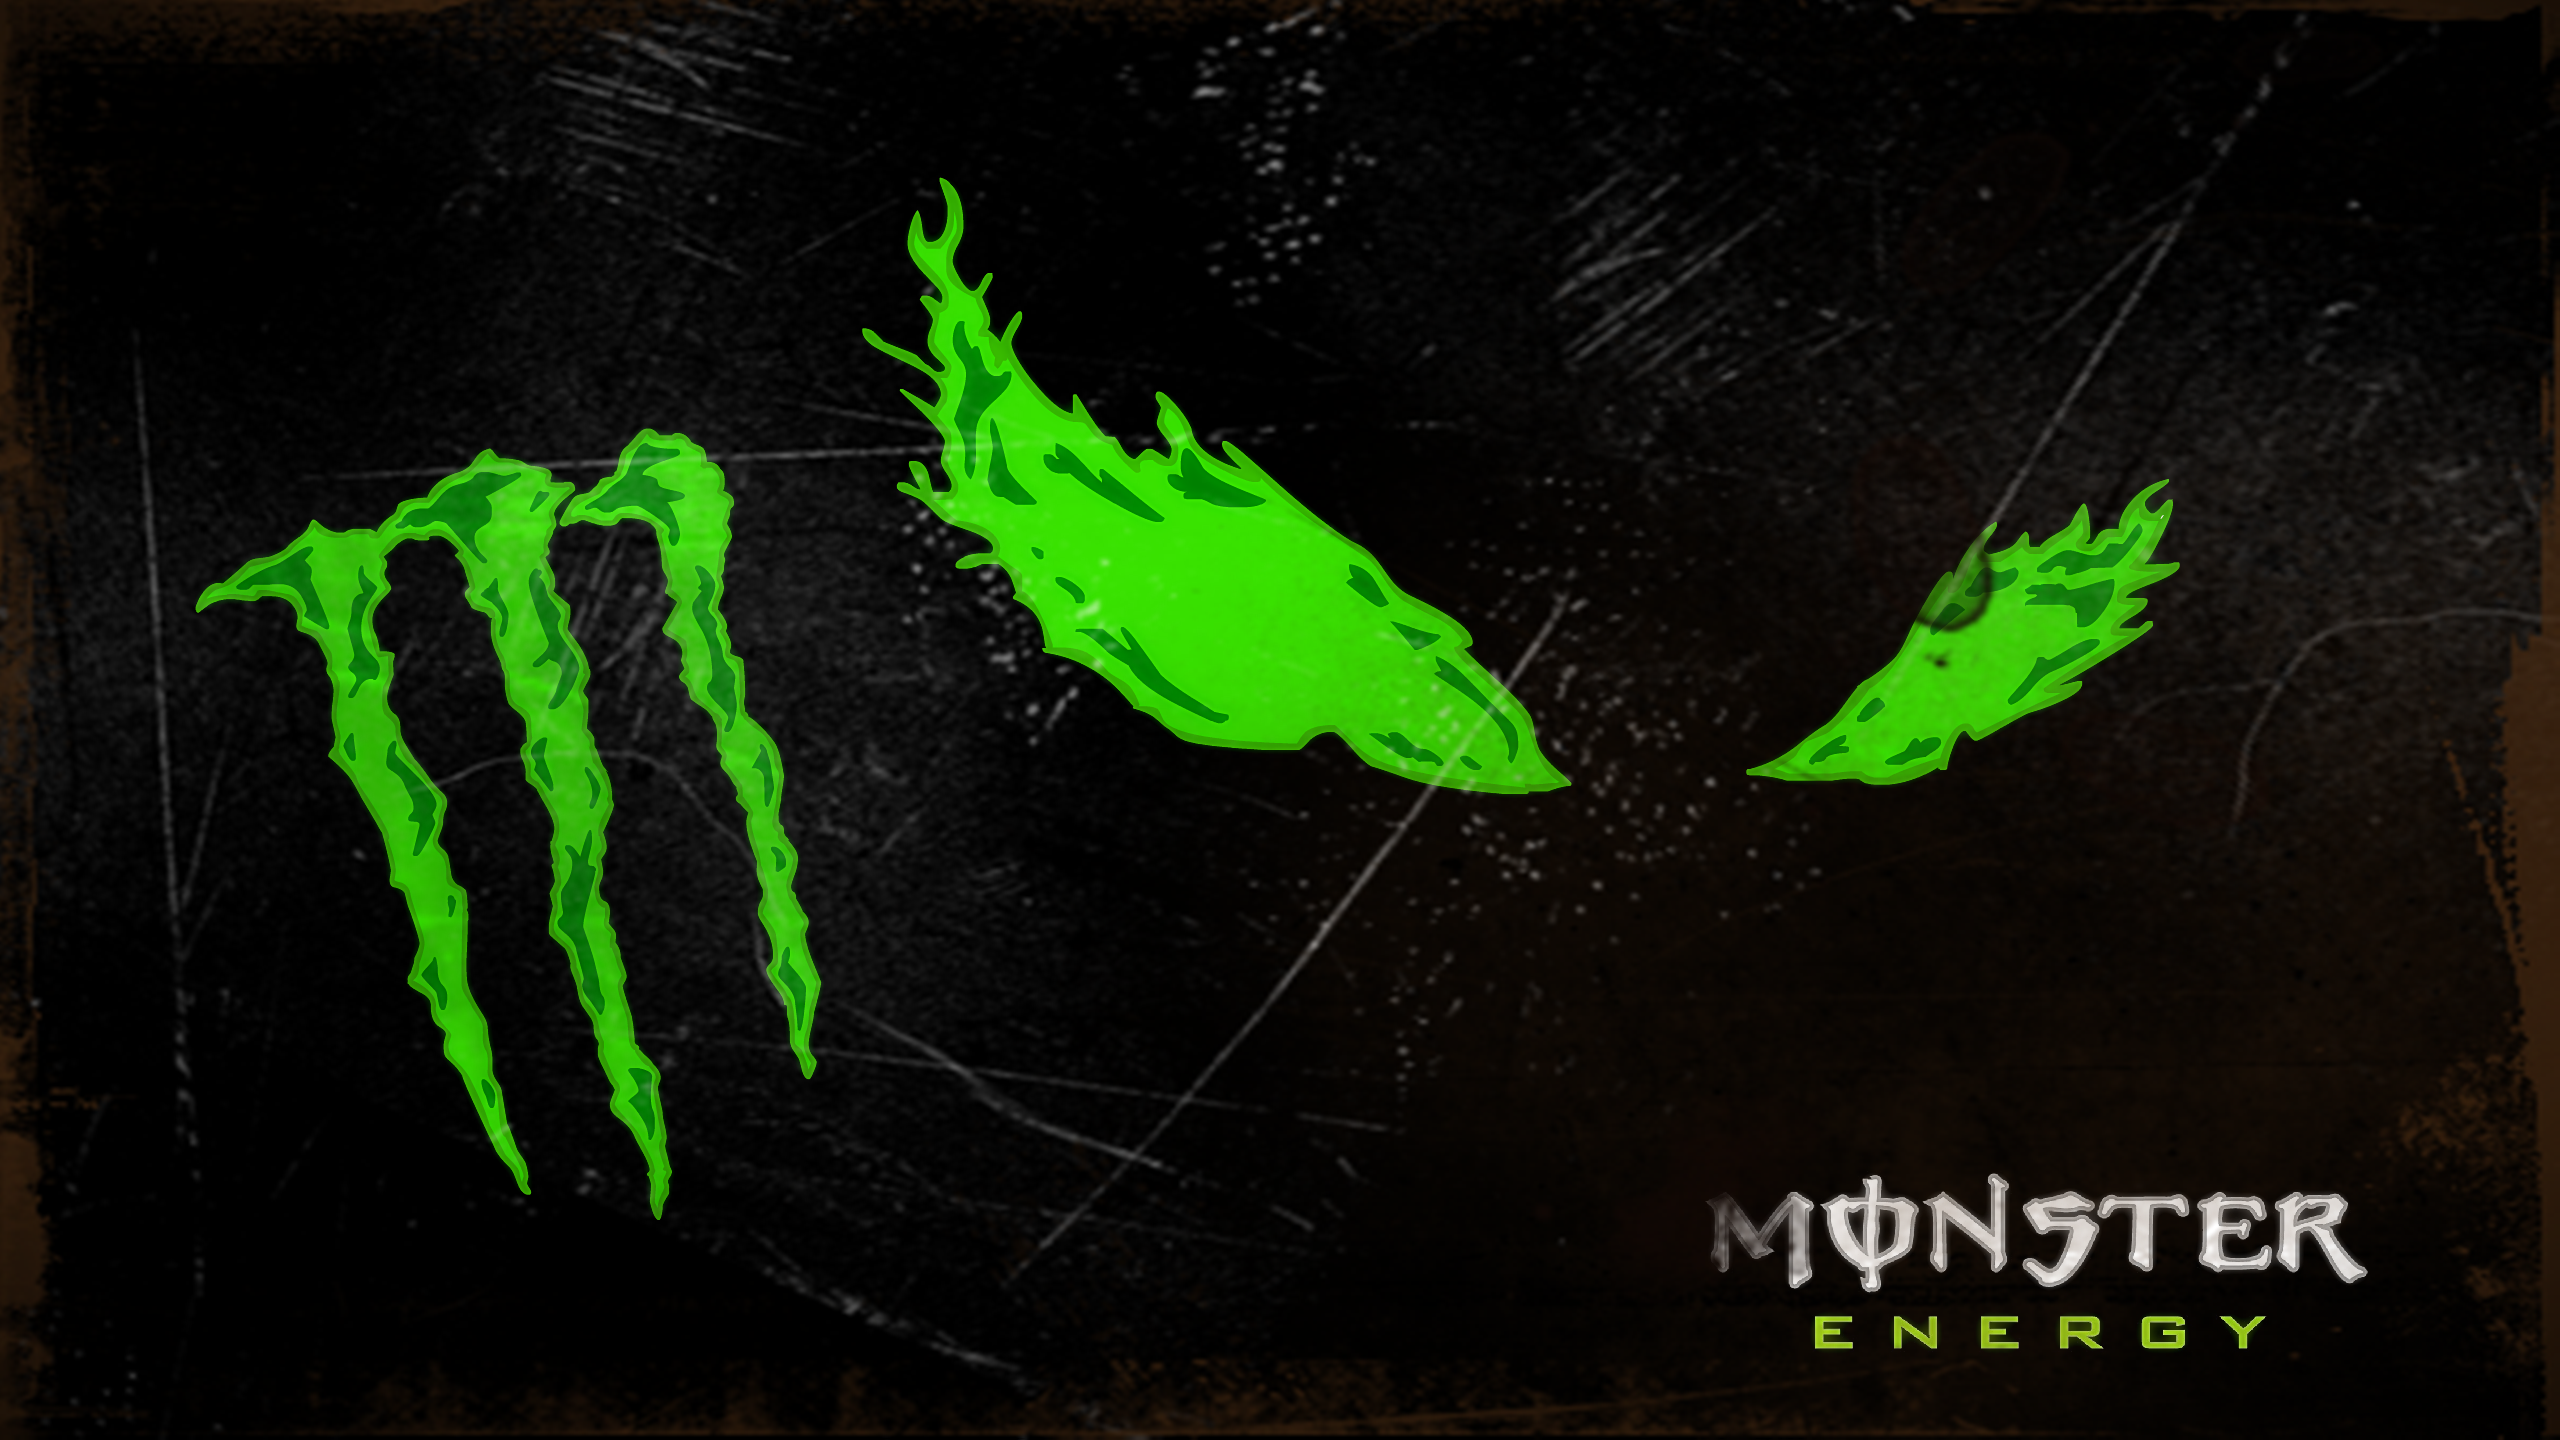 Cool Monster Energy Pics Wallpaper Pictures 15 Wide Wallpaperizcom 2560x1440